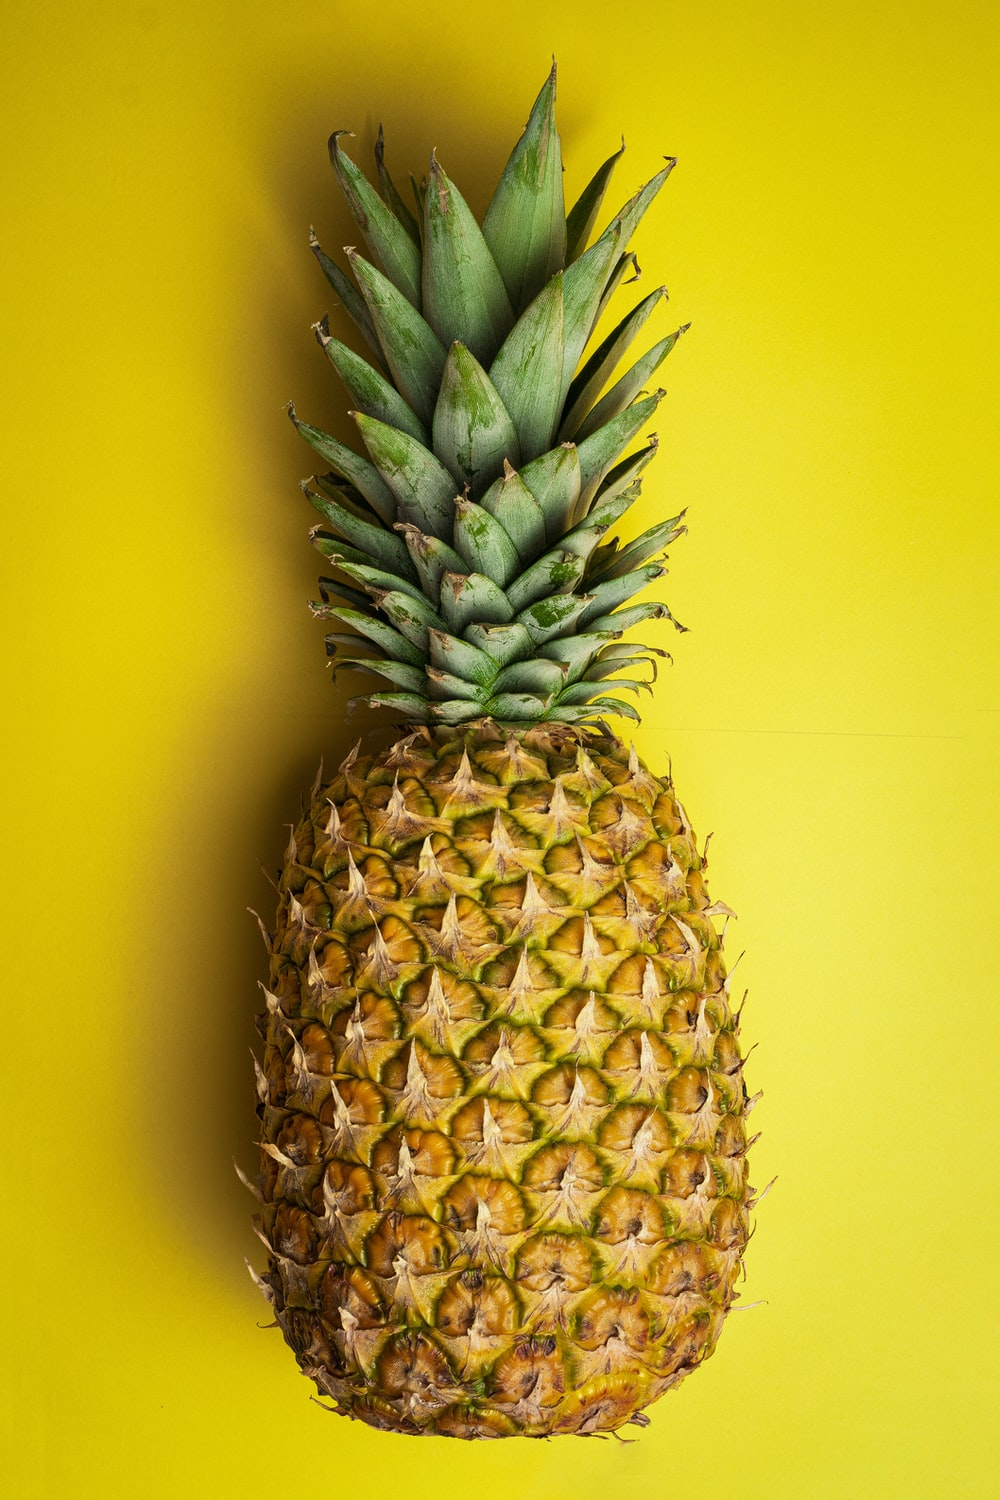 pineapple fruit on yellow surface